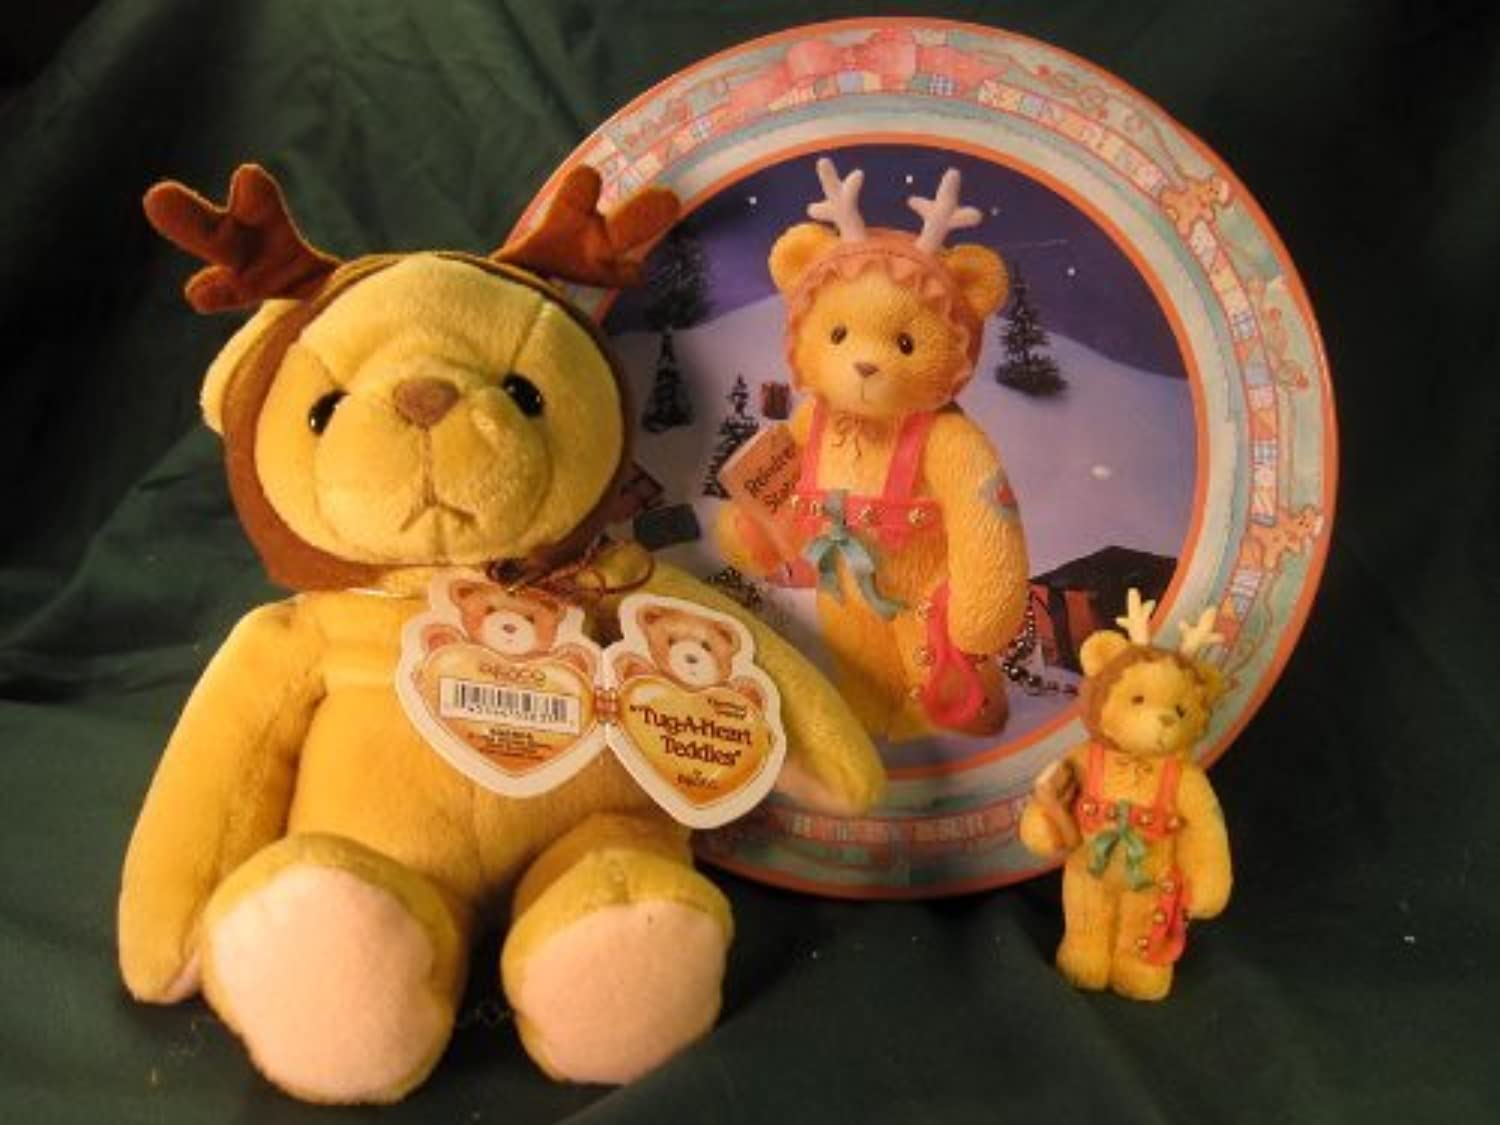 Cherished Teddies.......... A Gift To Go With Holiday Gift Tin by Pricilla and Glenn Hillman's Cherished Teddies Collection